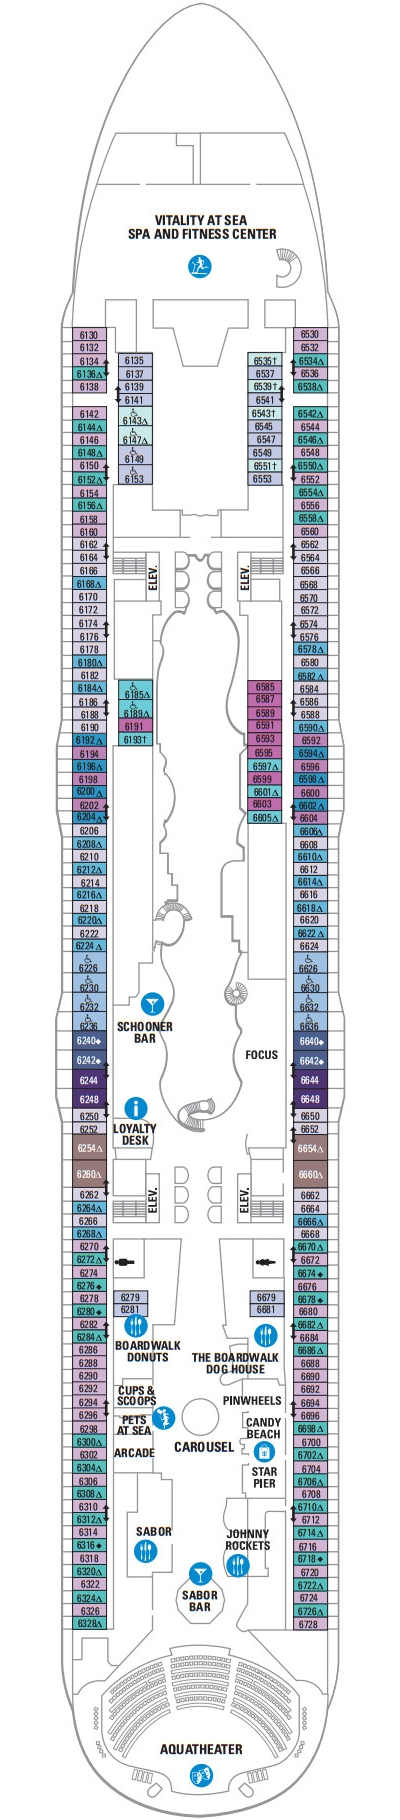 Allure Of The Seas Deck 6 layout